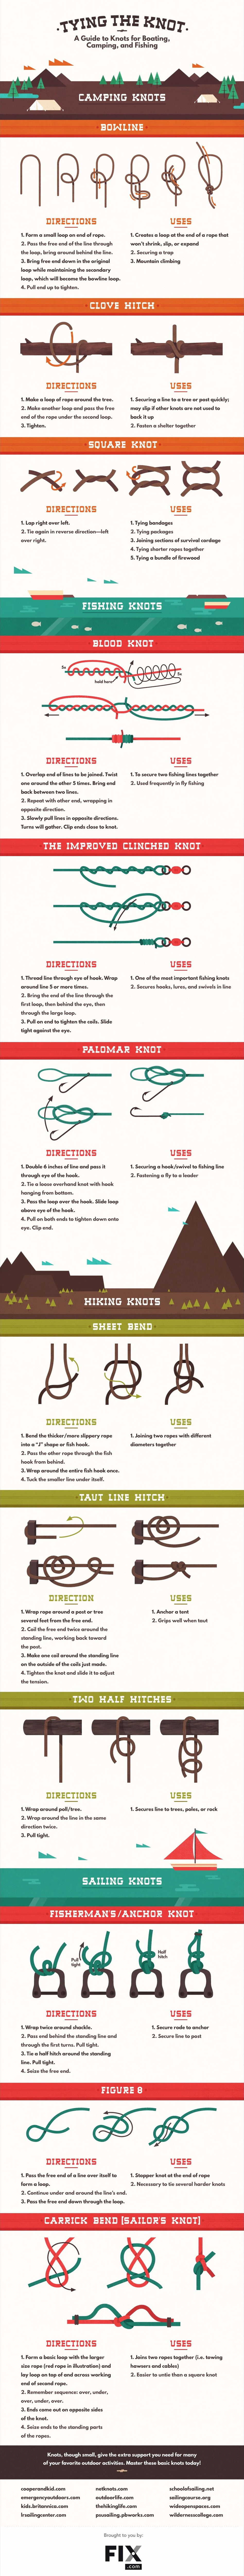 How to Tie Knots in Rope - Camping Infographic